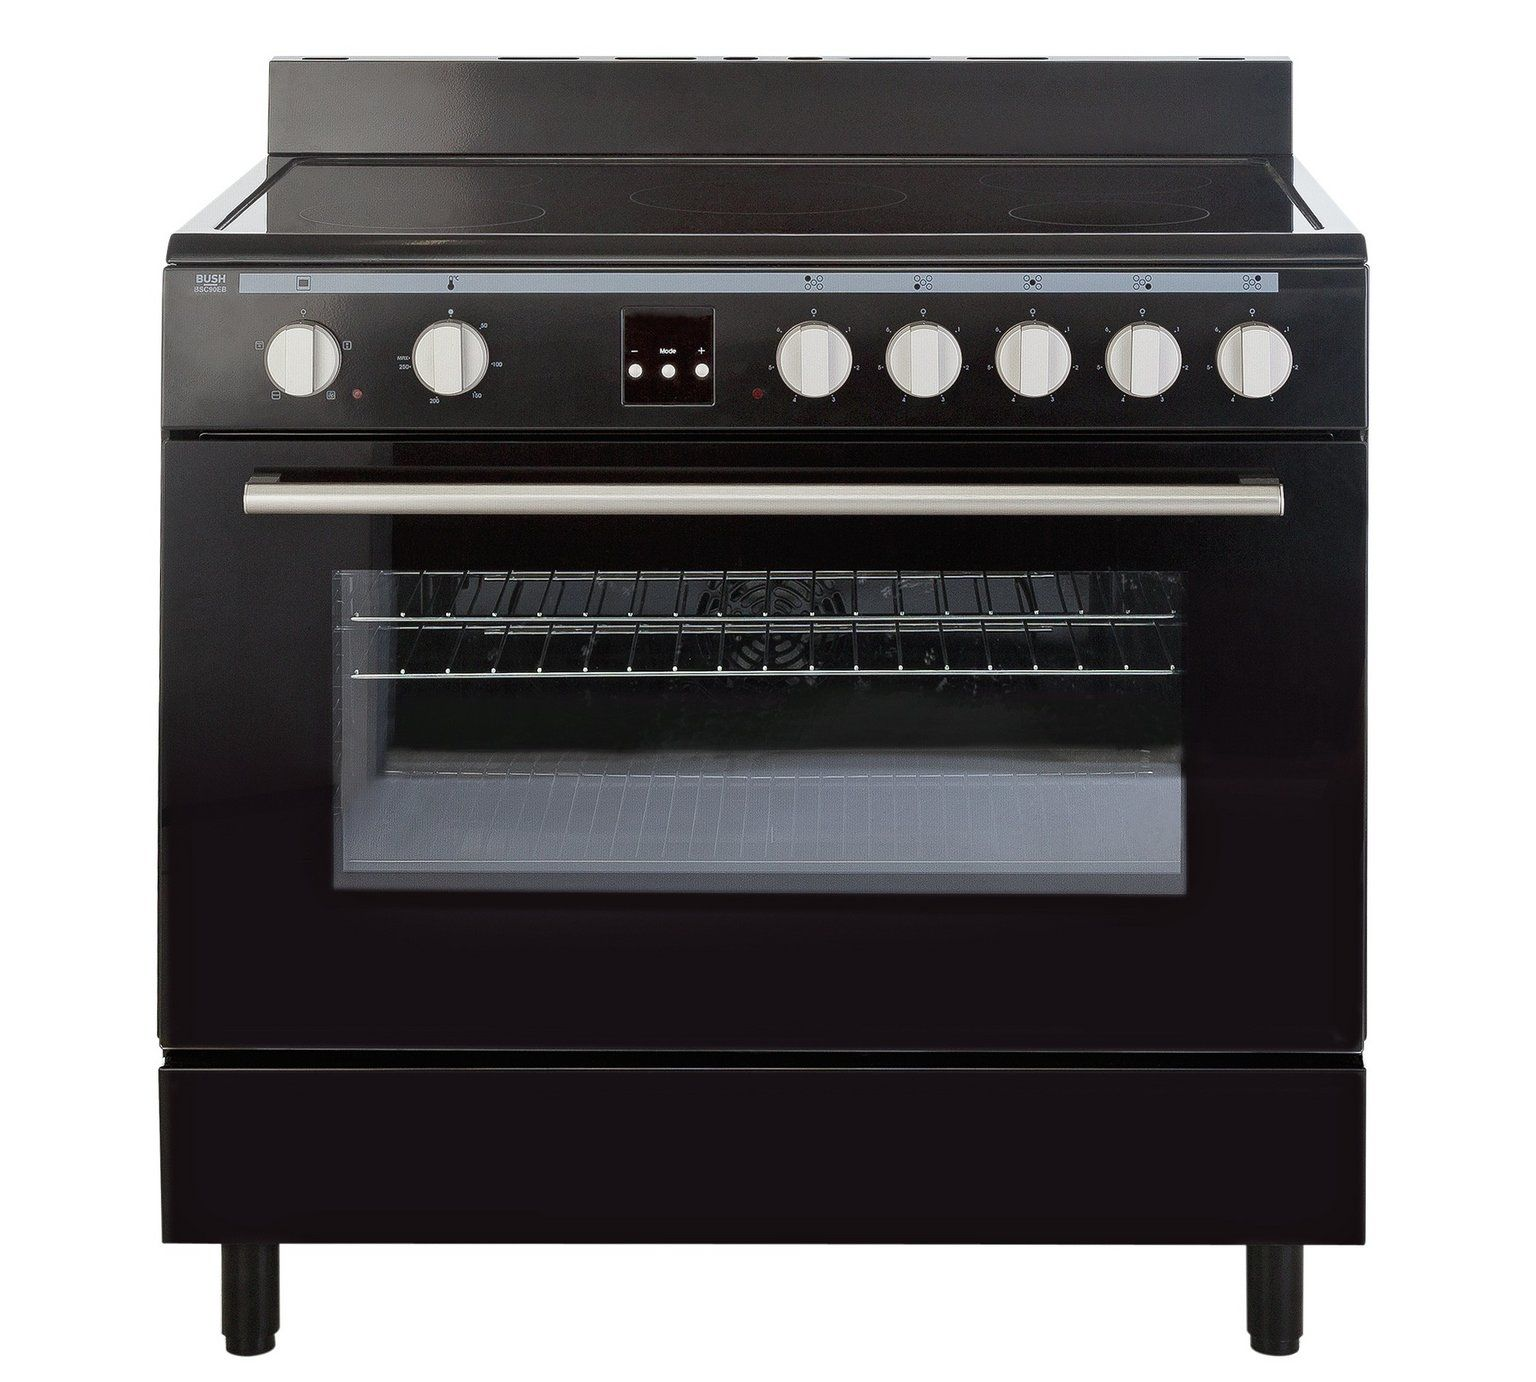 Medium image of buy bush bsc90eb electric range cooker   black at argos co uk   your